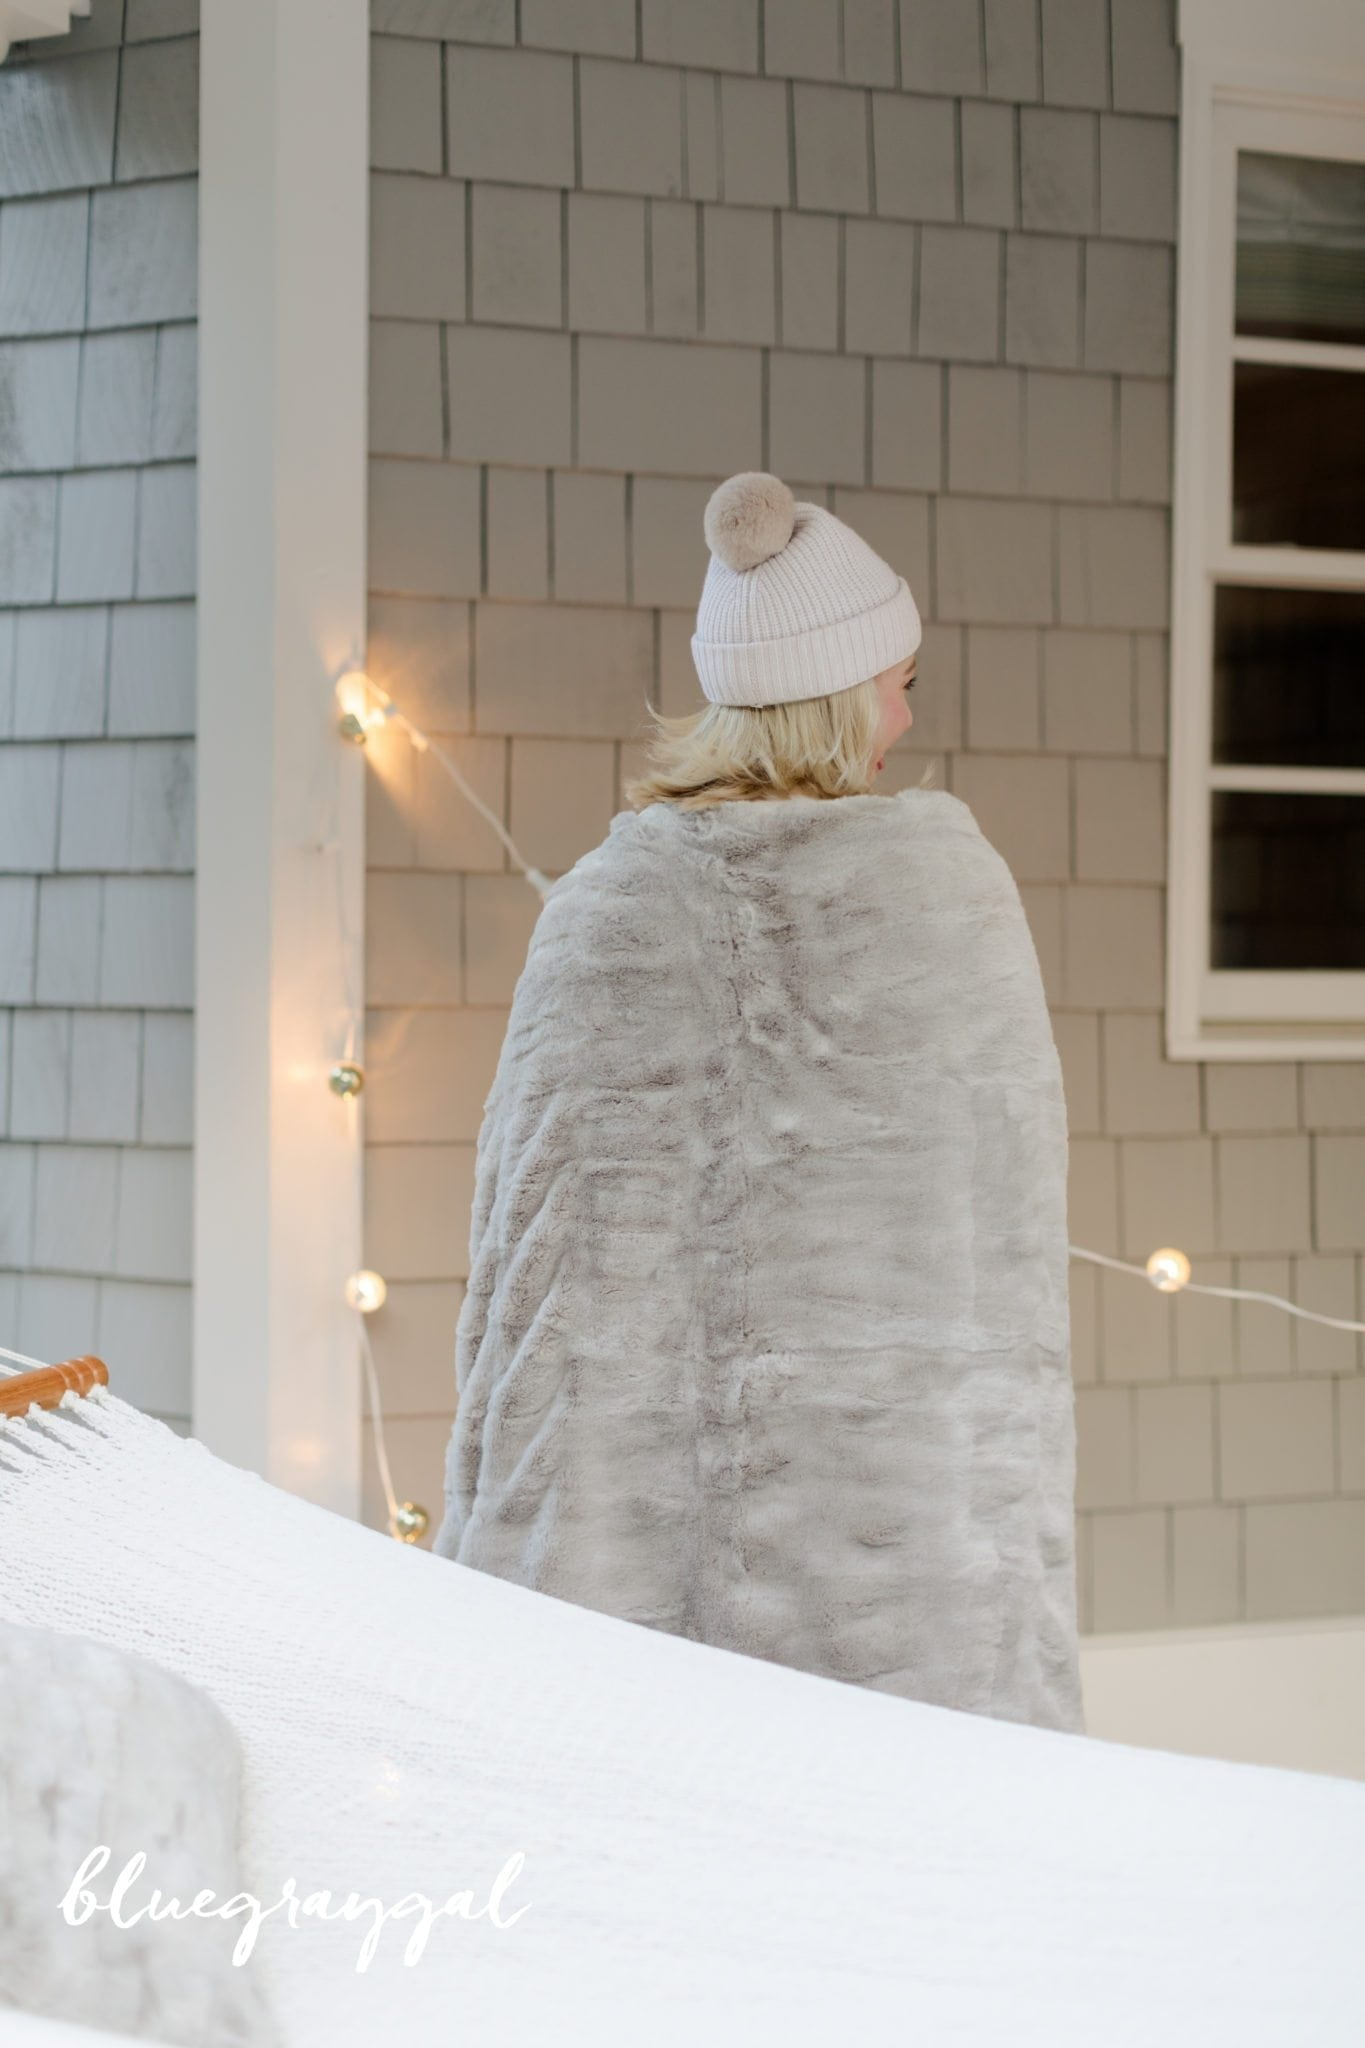 gray faux fur blanket wrapped around kelly page in a pink pom pom hat by gray shingle house exterior